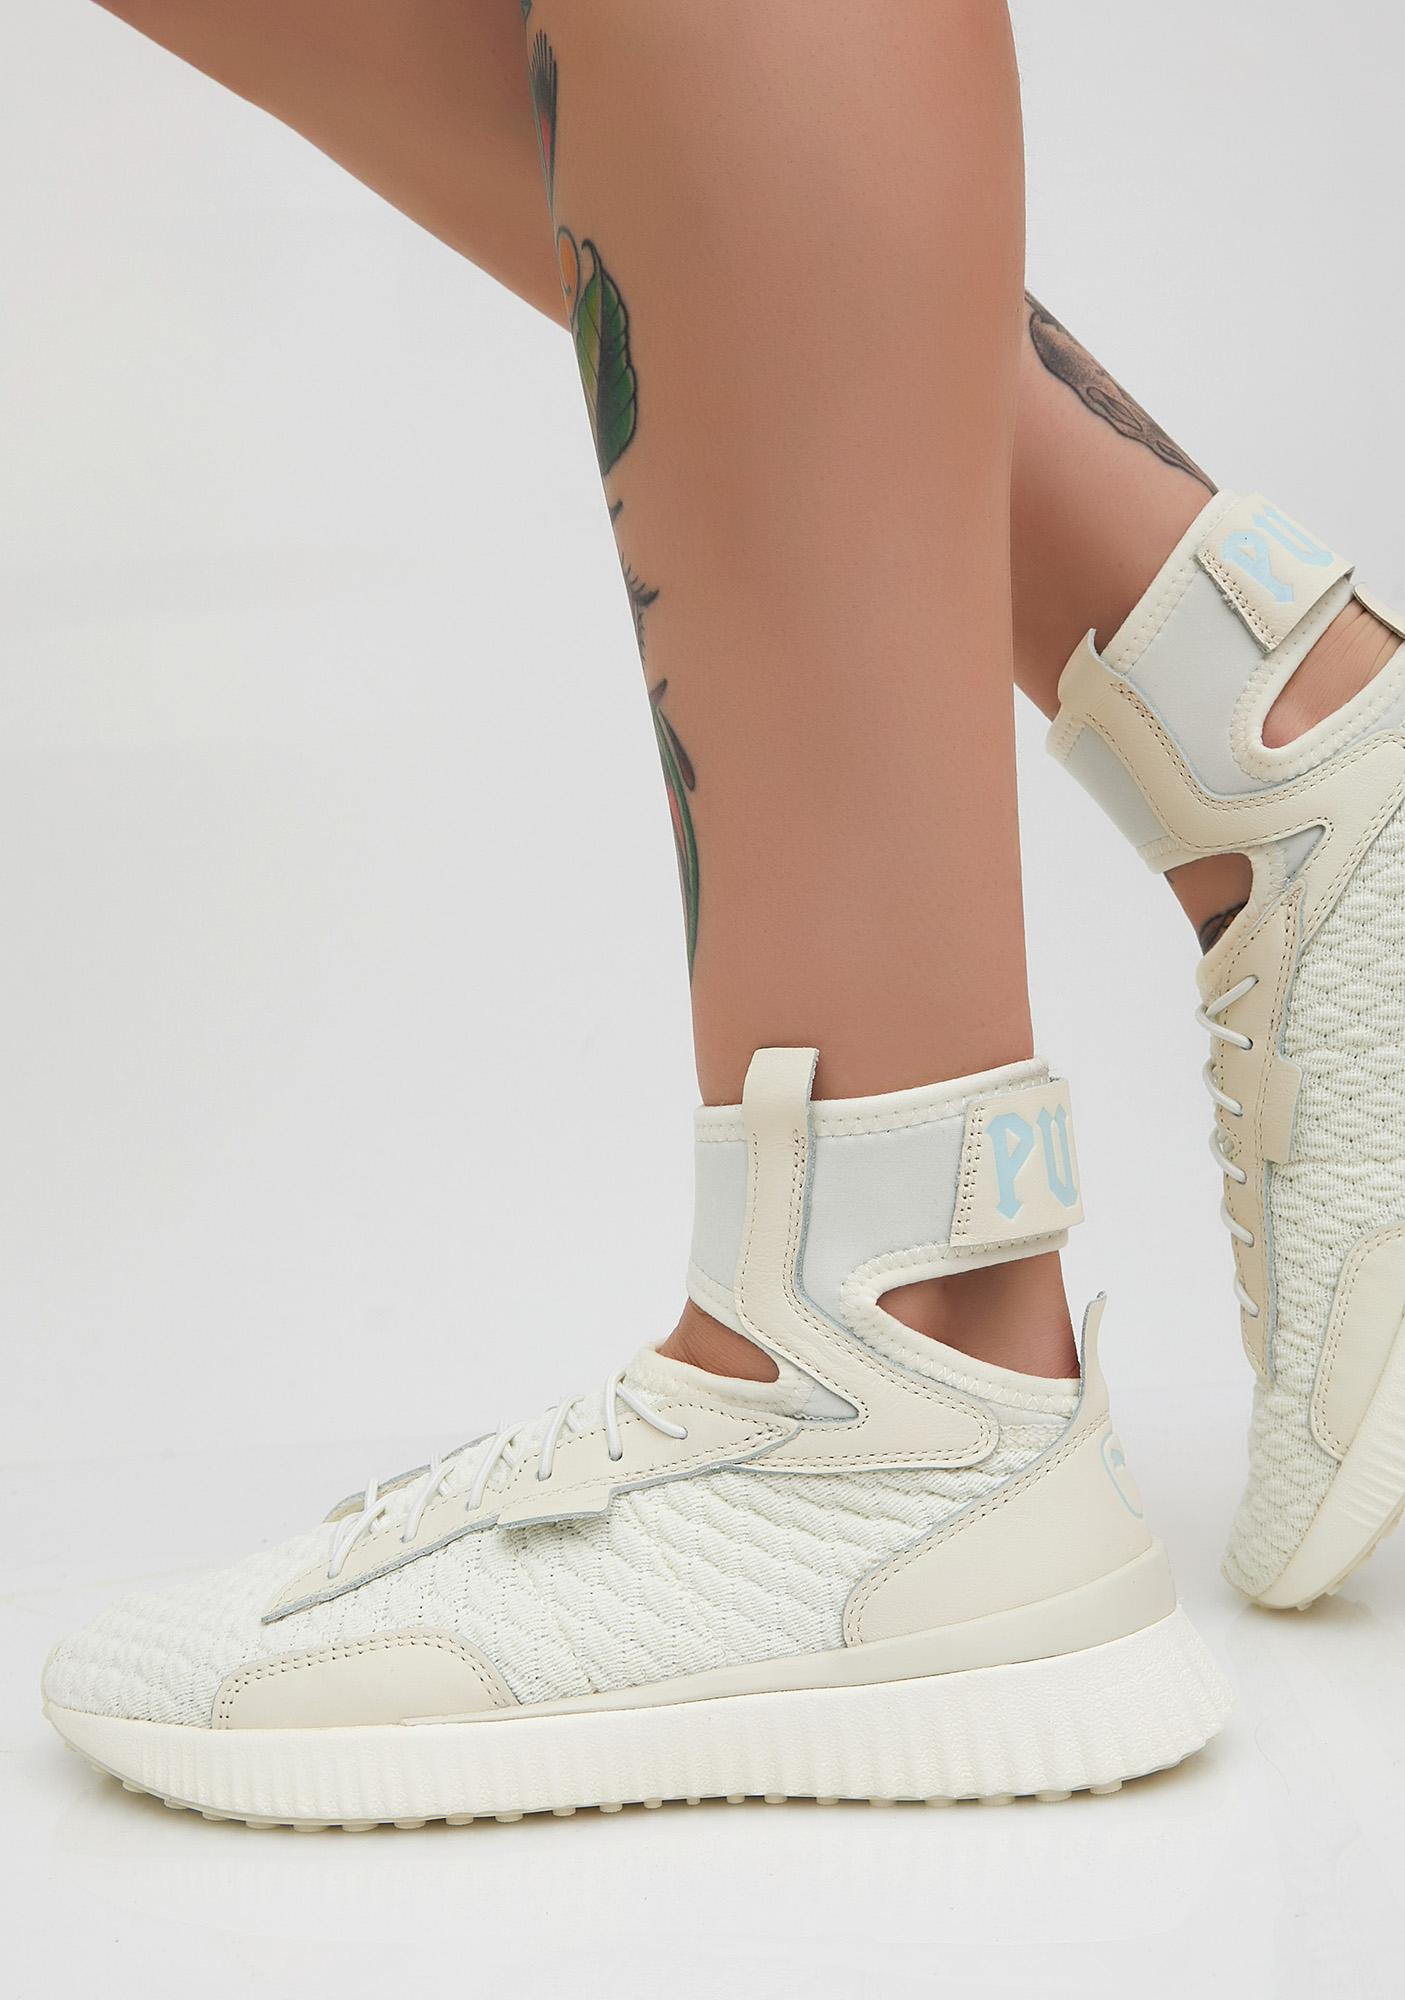 b2f55c354 PUMA FENTY PUMA By Rihanna Trainer Mid Geo Sneakers | Dolls Kill